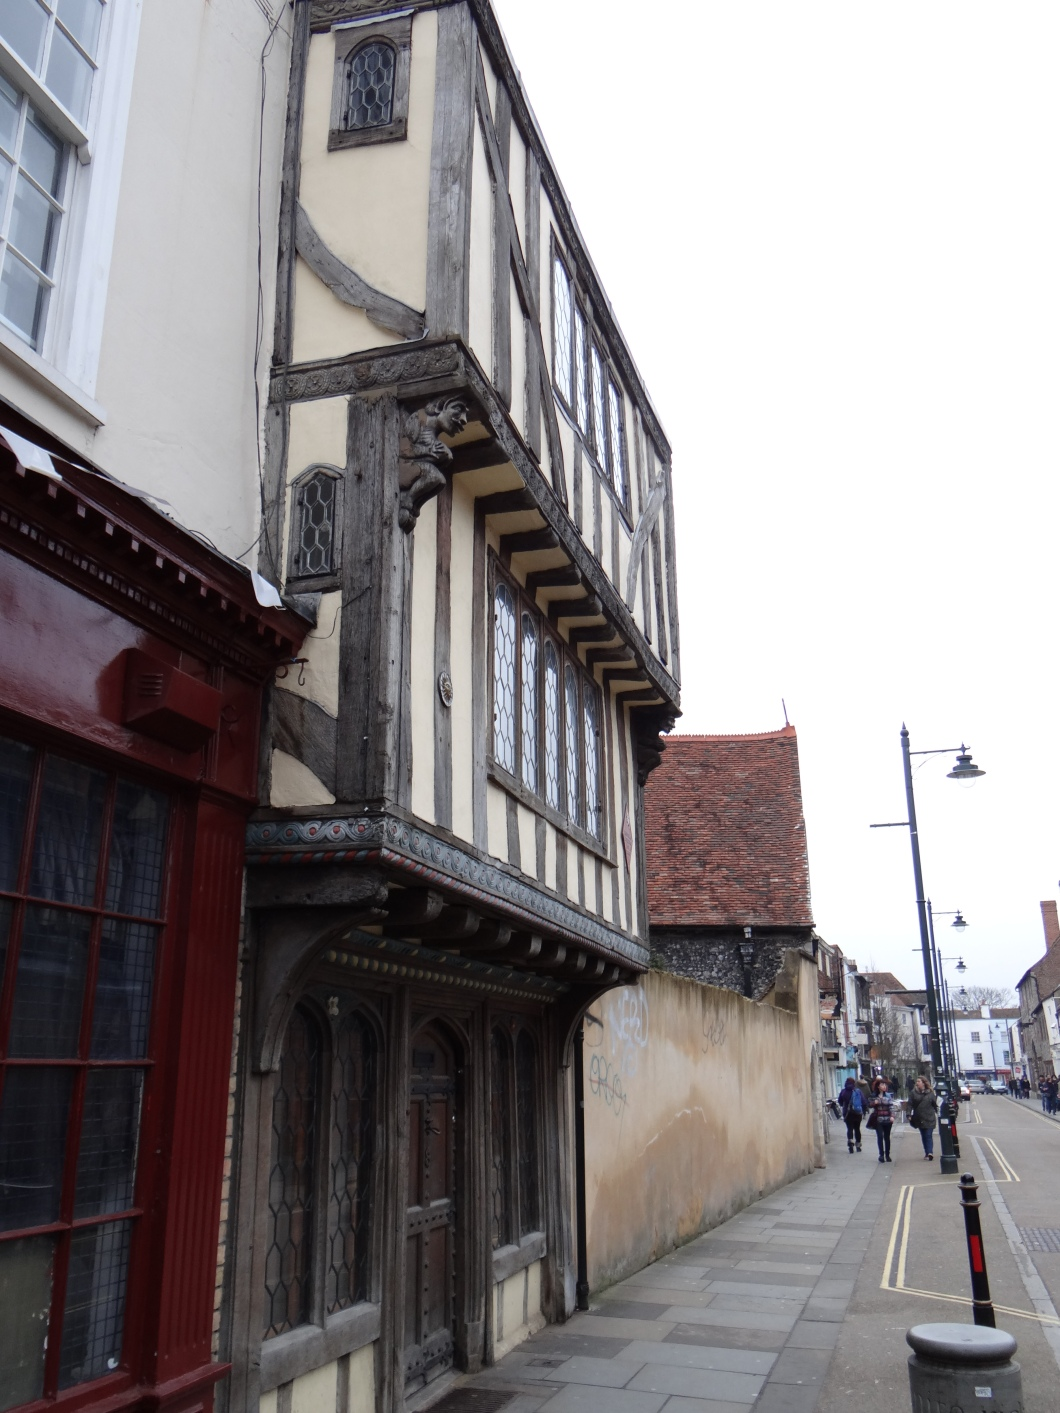 This  half-timbered building has two projecting upper stories over a ground floor